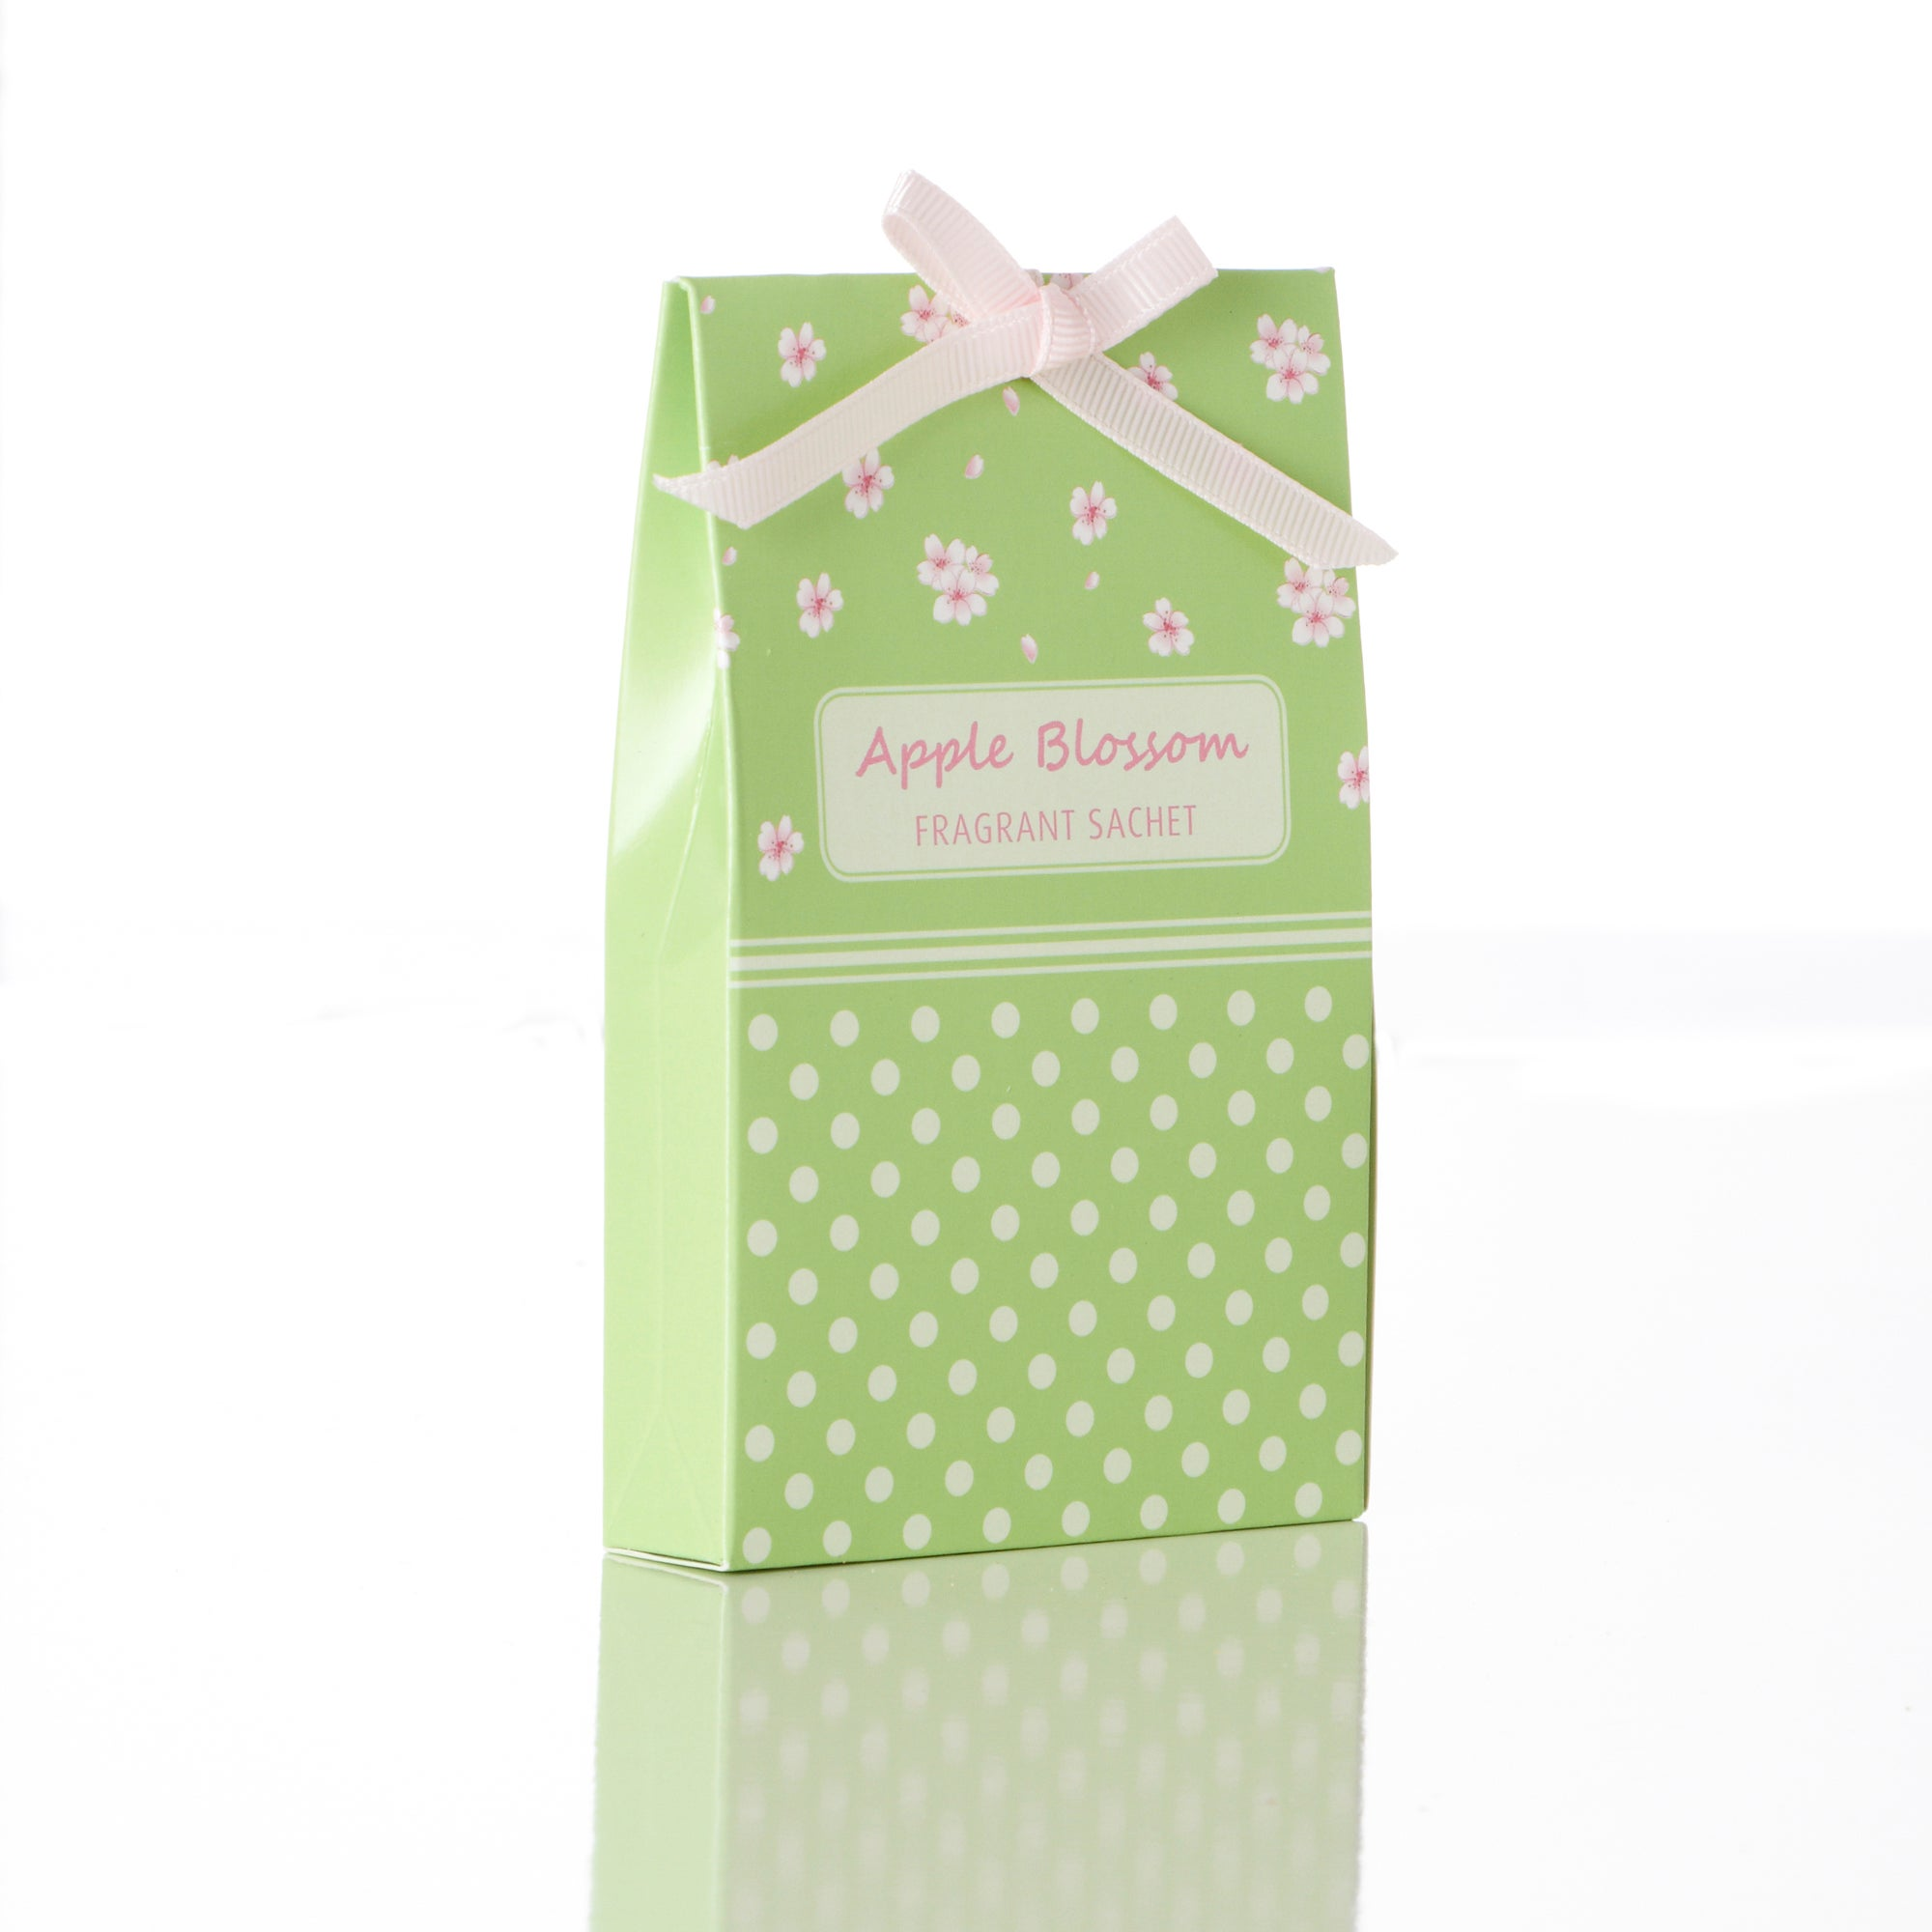 Apple Blossom Scented Sachet